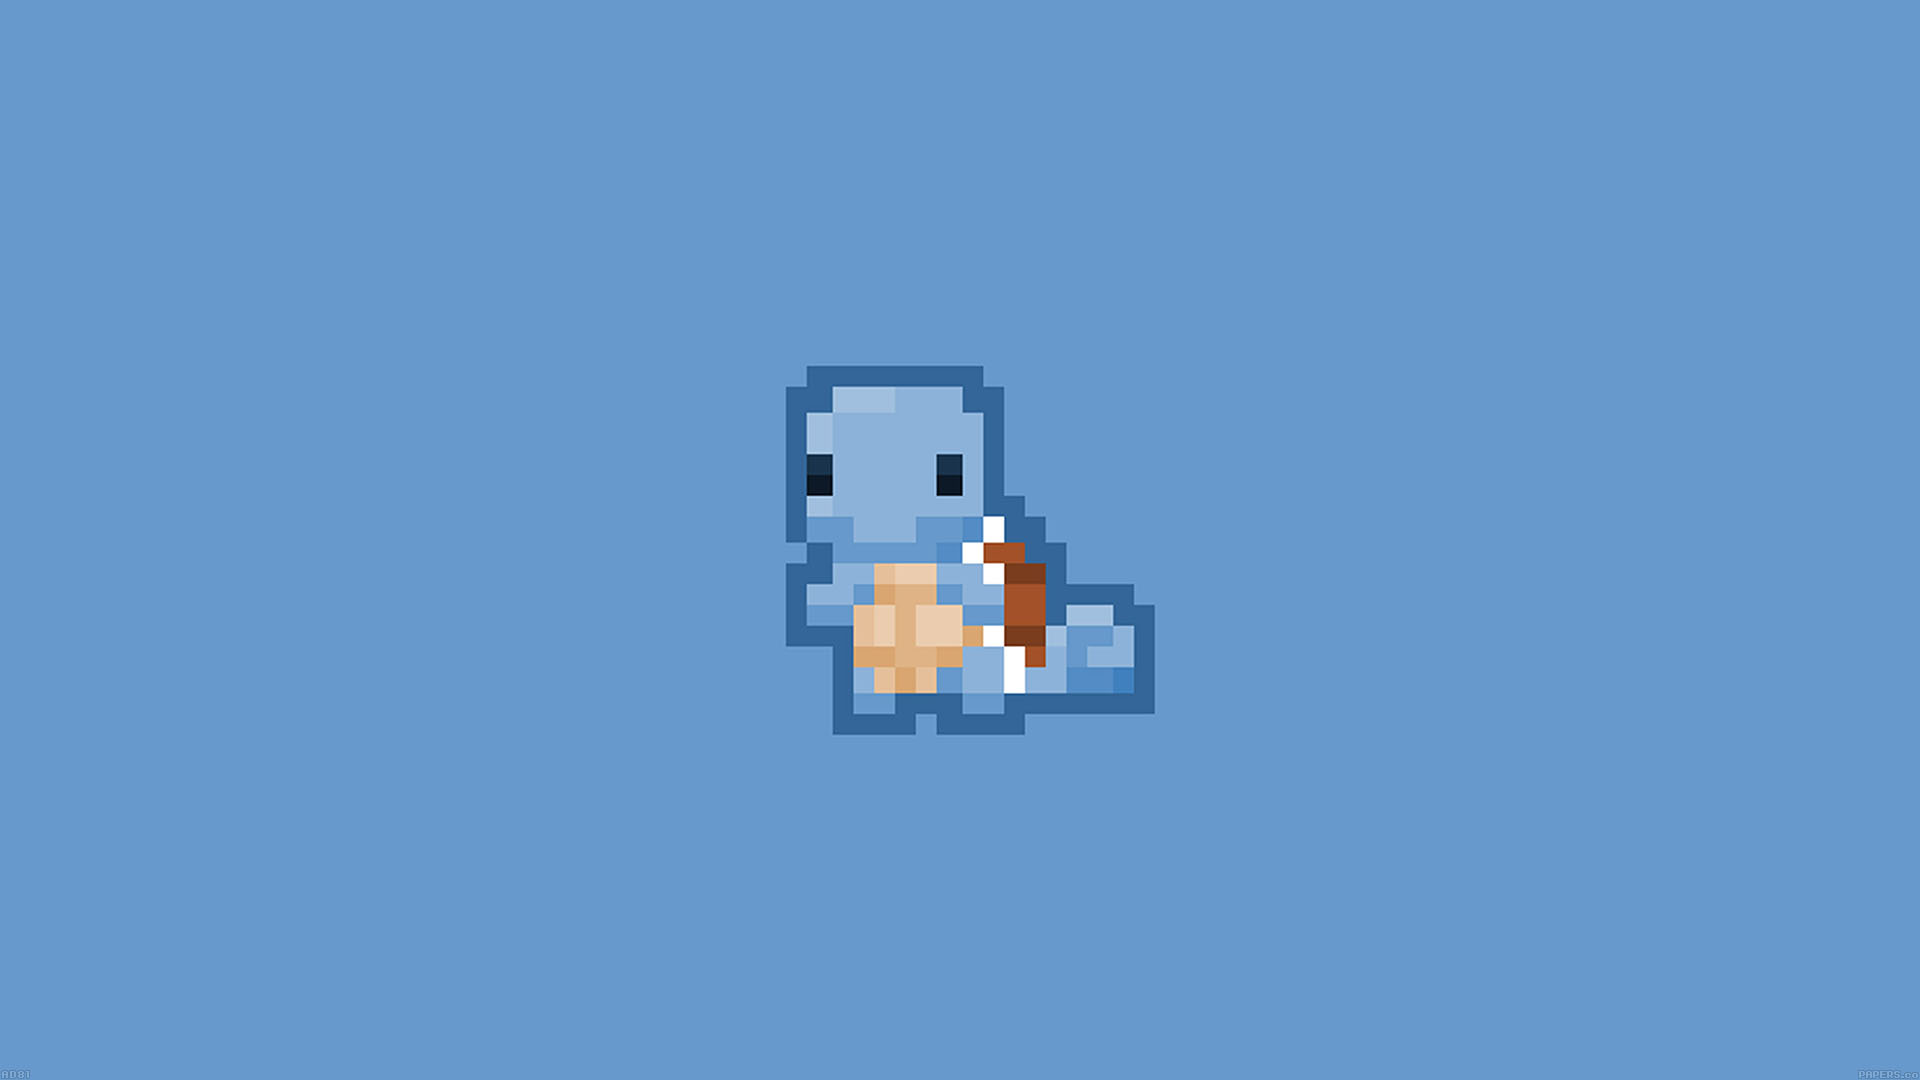 ad81-squirtle-pixel-art-illust - Papers.co